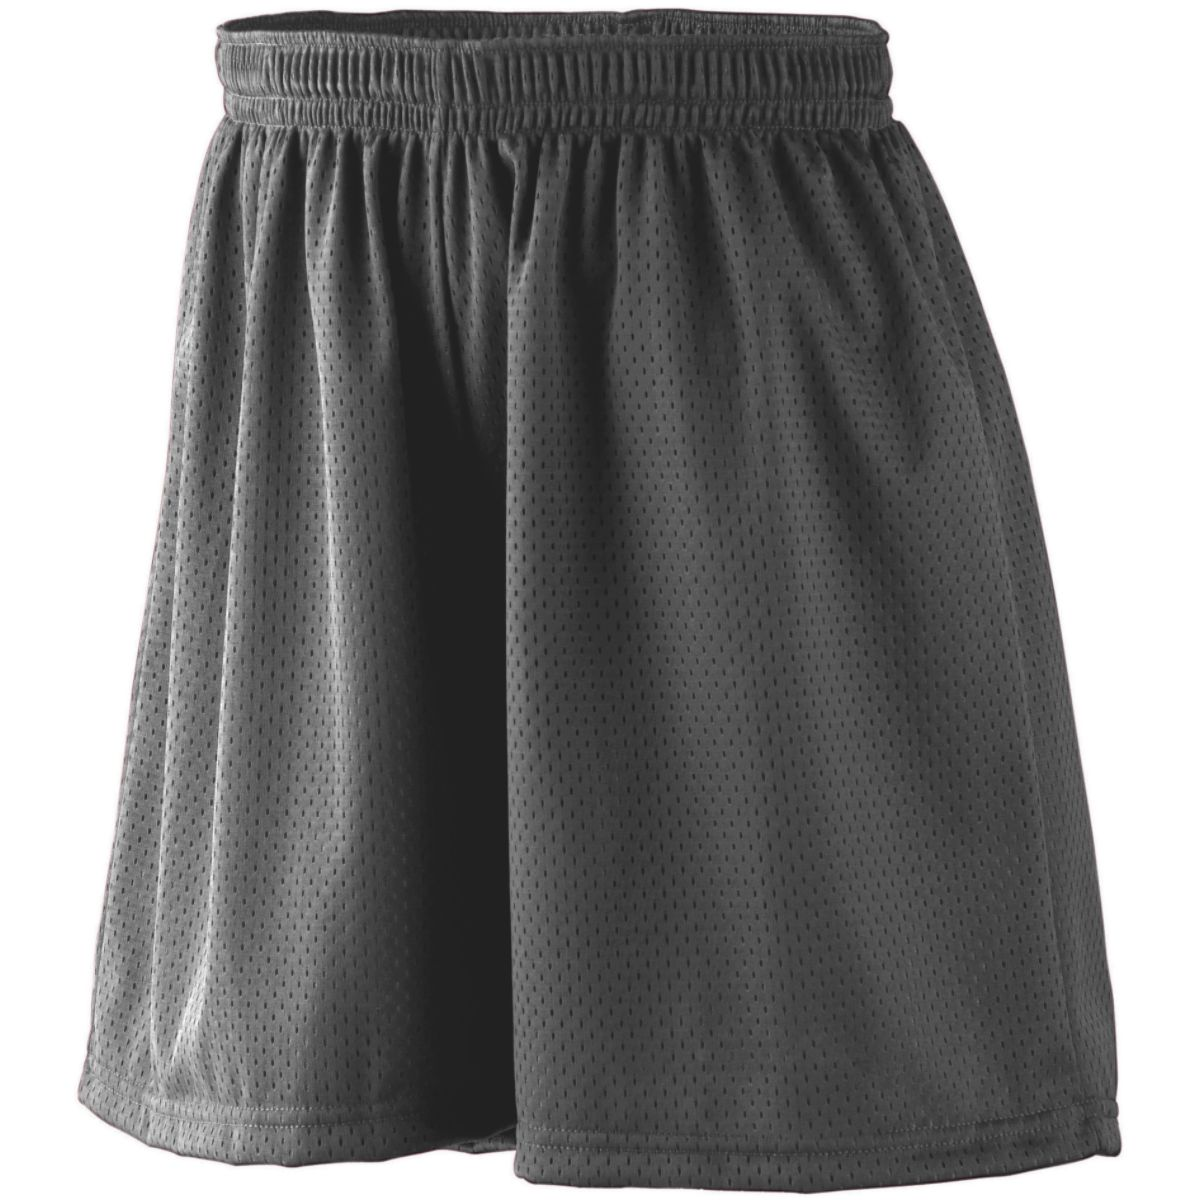 Girls Tricot Mesh Short/tricot Lined BLACK L